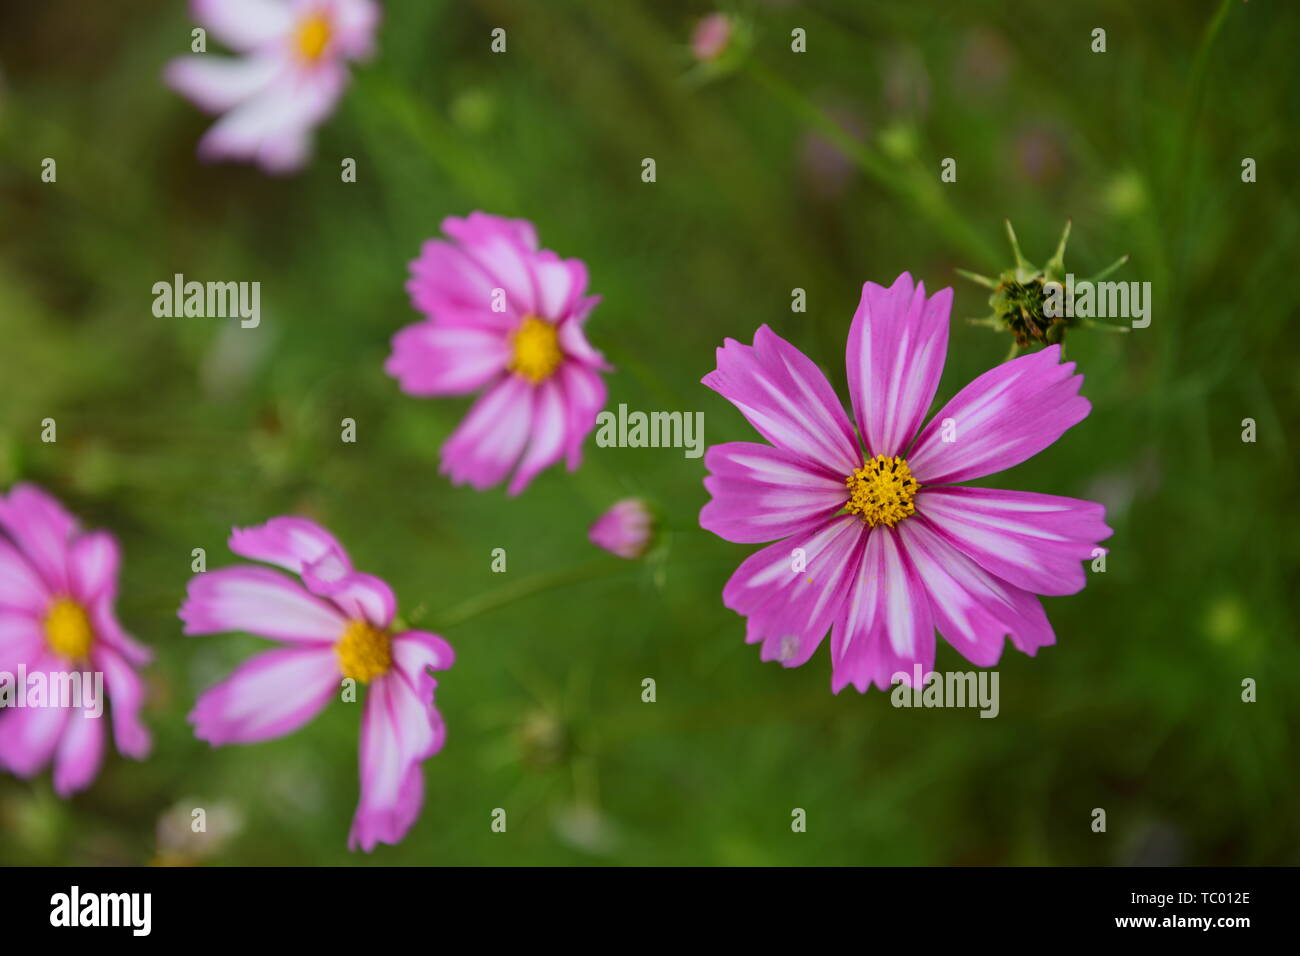 Gesang Flowers High Definition Close Up High Resolution Stock Photography And Images Alamy